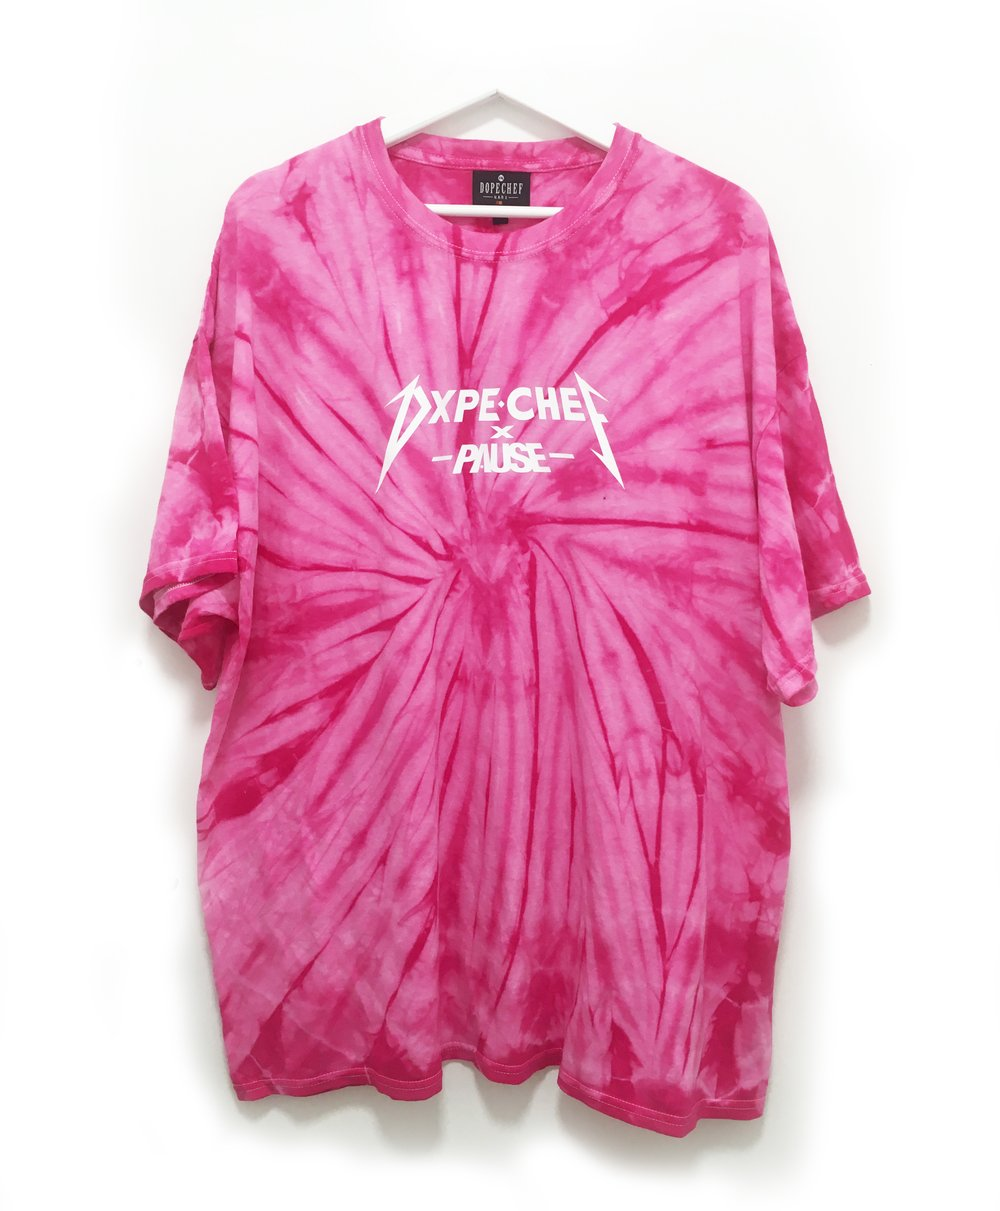 PAUSE x Dope Chef Pink Vortex Collab Launches